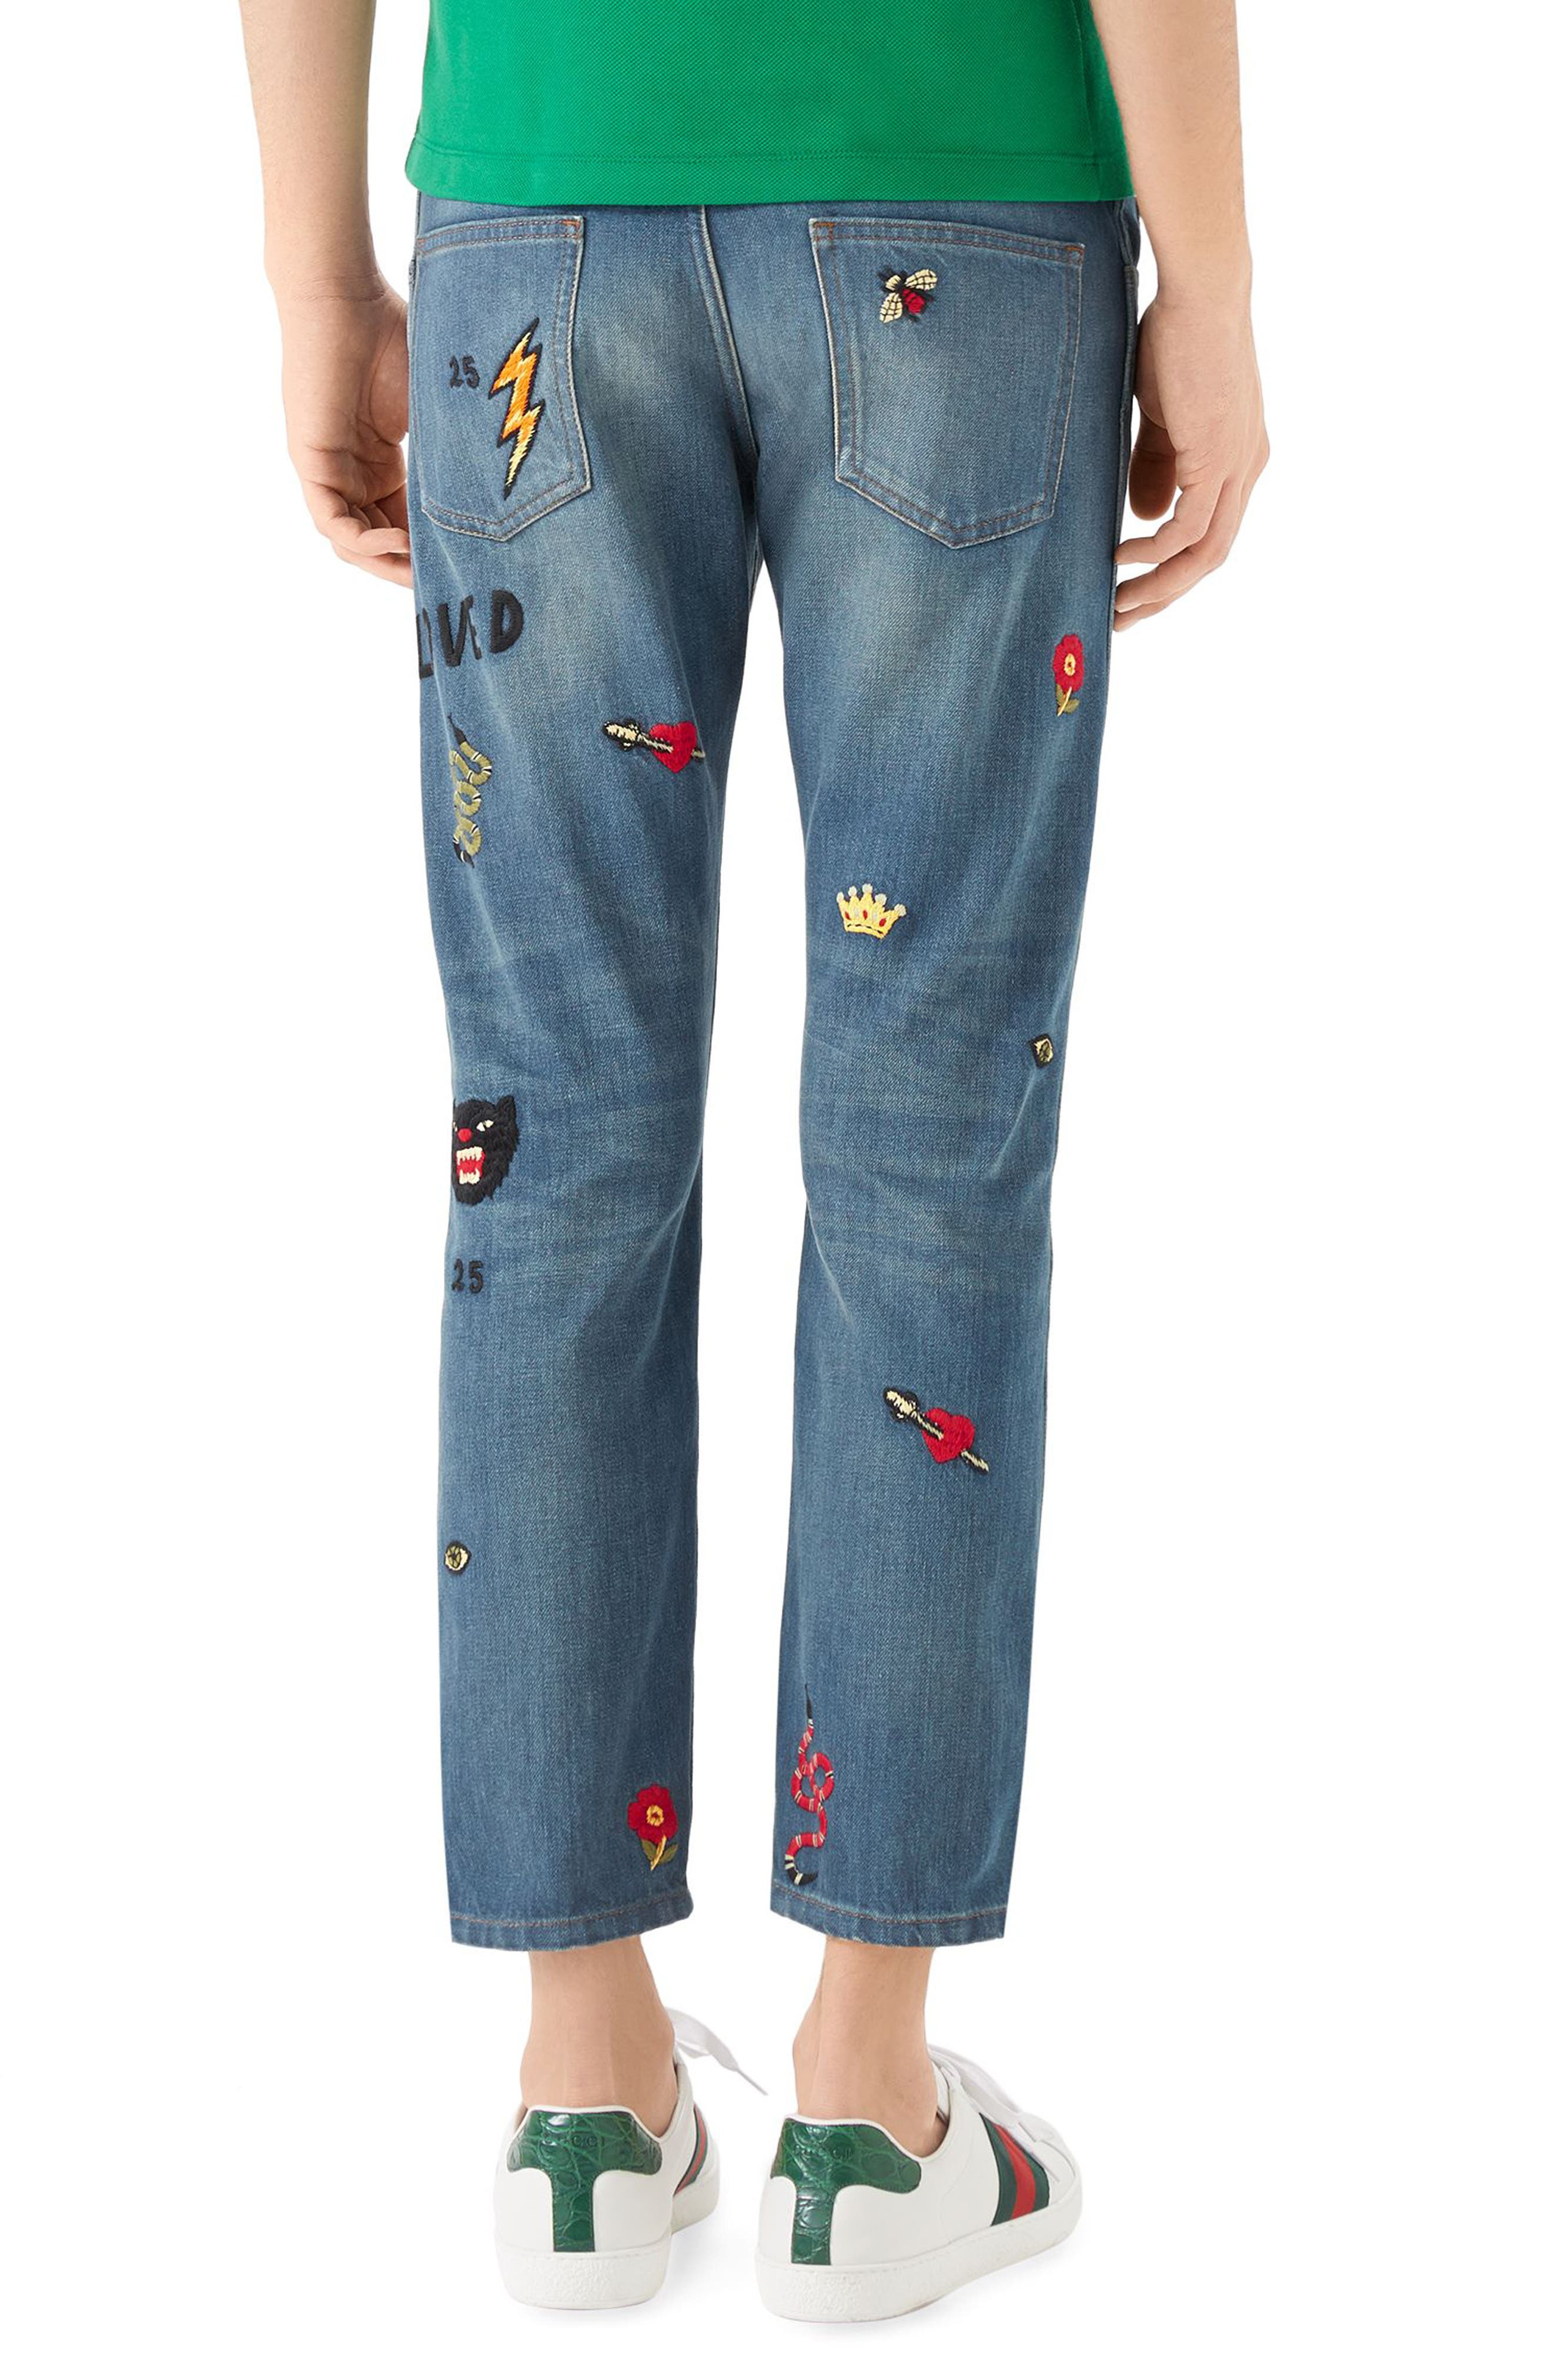 Gucci Embroidered Slim Jeans - Blue Size 31